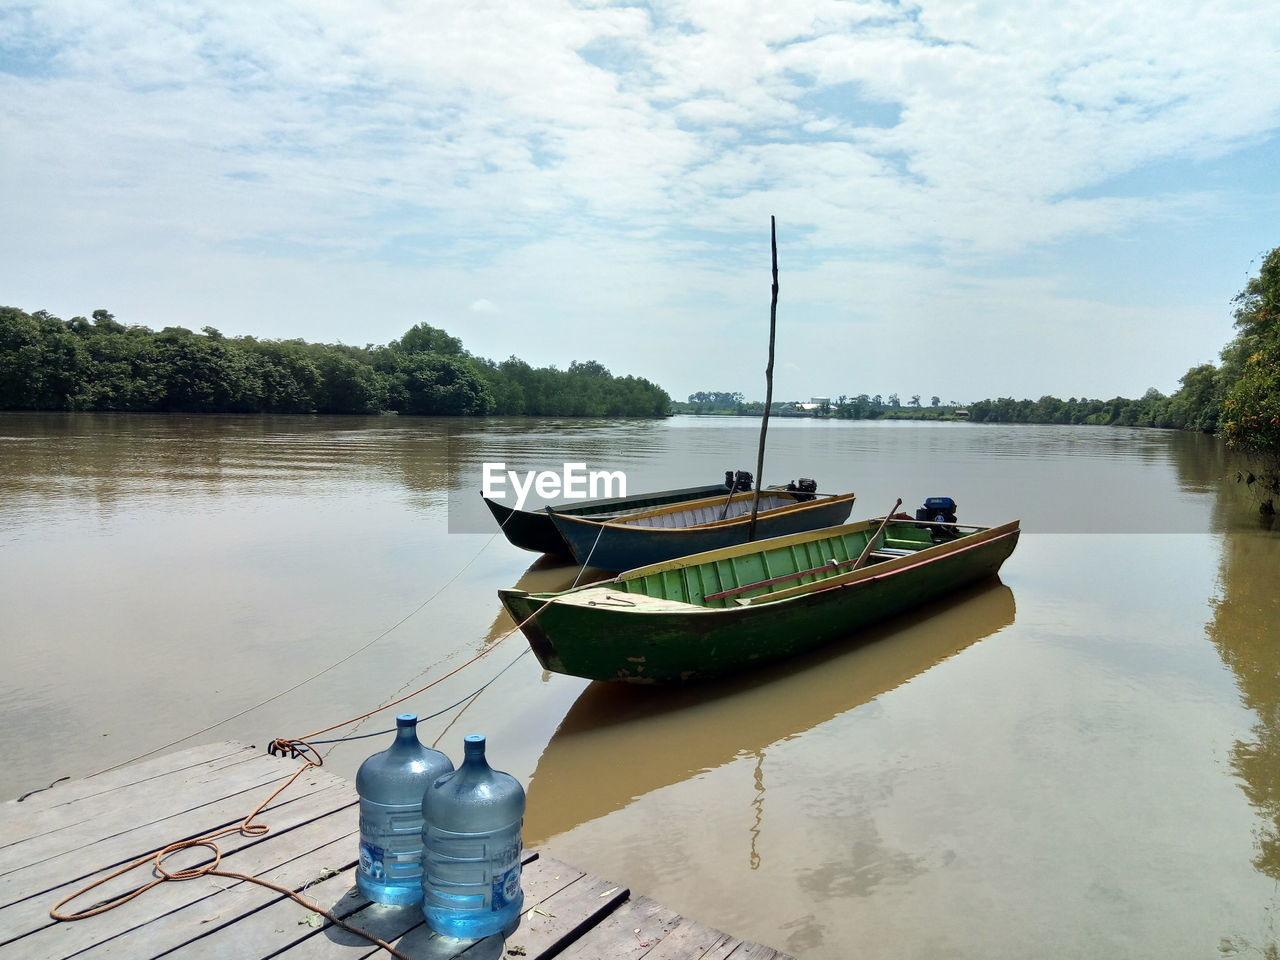 nautical vessel, transportation, water, mode of transportation, moored, lake, reflection, tranquility, sky, cloud - sky, nature, tree, day, tranquil scene, scenics - nature, plant, no people, beauty in nature, outdoors, rowboat